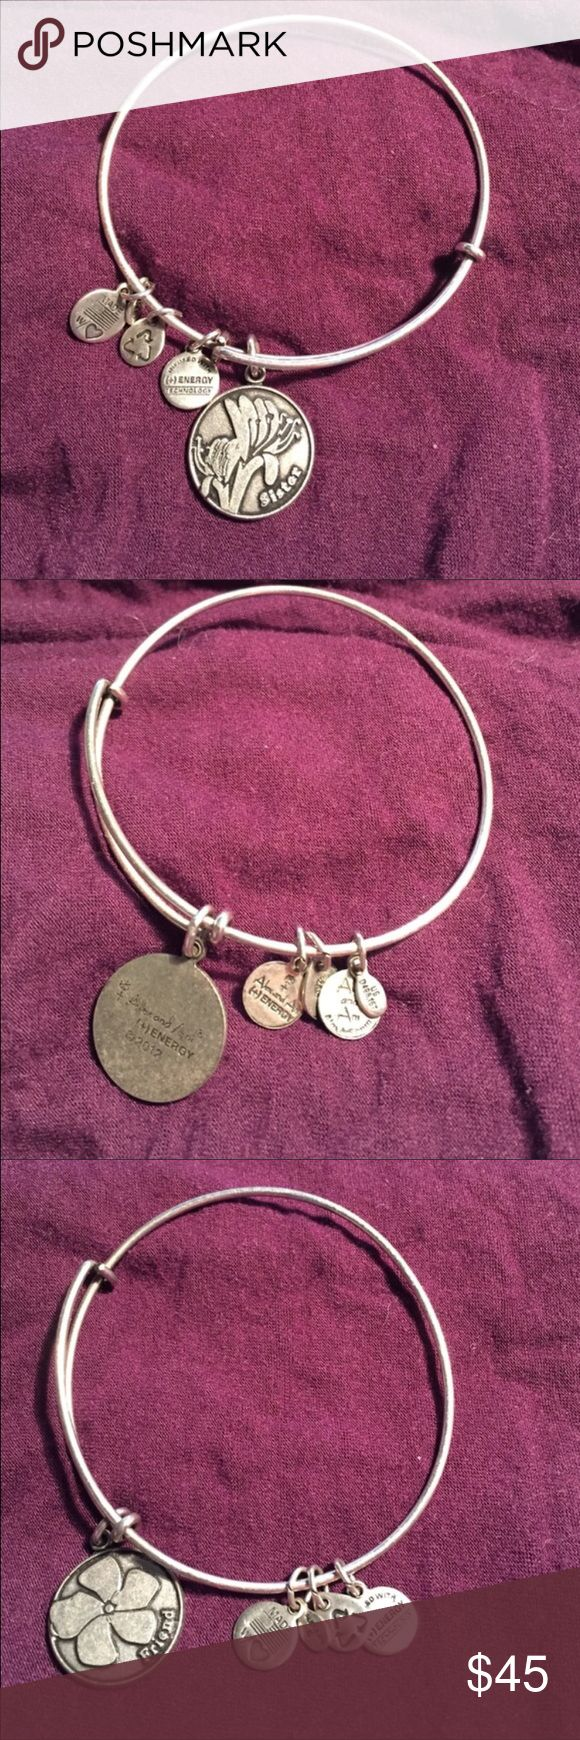 RePosh Set of 2 EUC Alex & Ani Bracelets Silver EUC Alex + Ani Energy SISTER charm bangle in silver and FRIEND Shamrock charm bracelet in silver. Comes from a smoke free home and ships in one business day! Alex & Ani Jewelry Bracelets